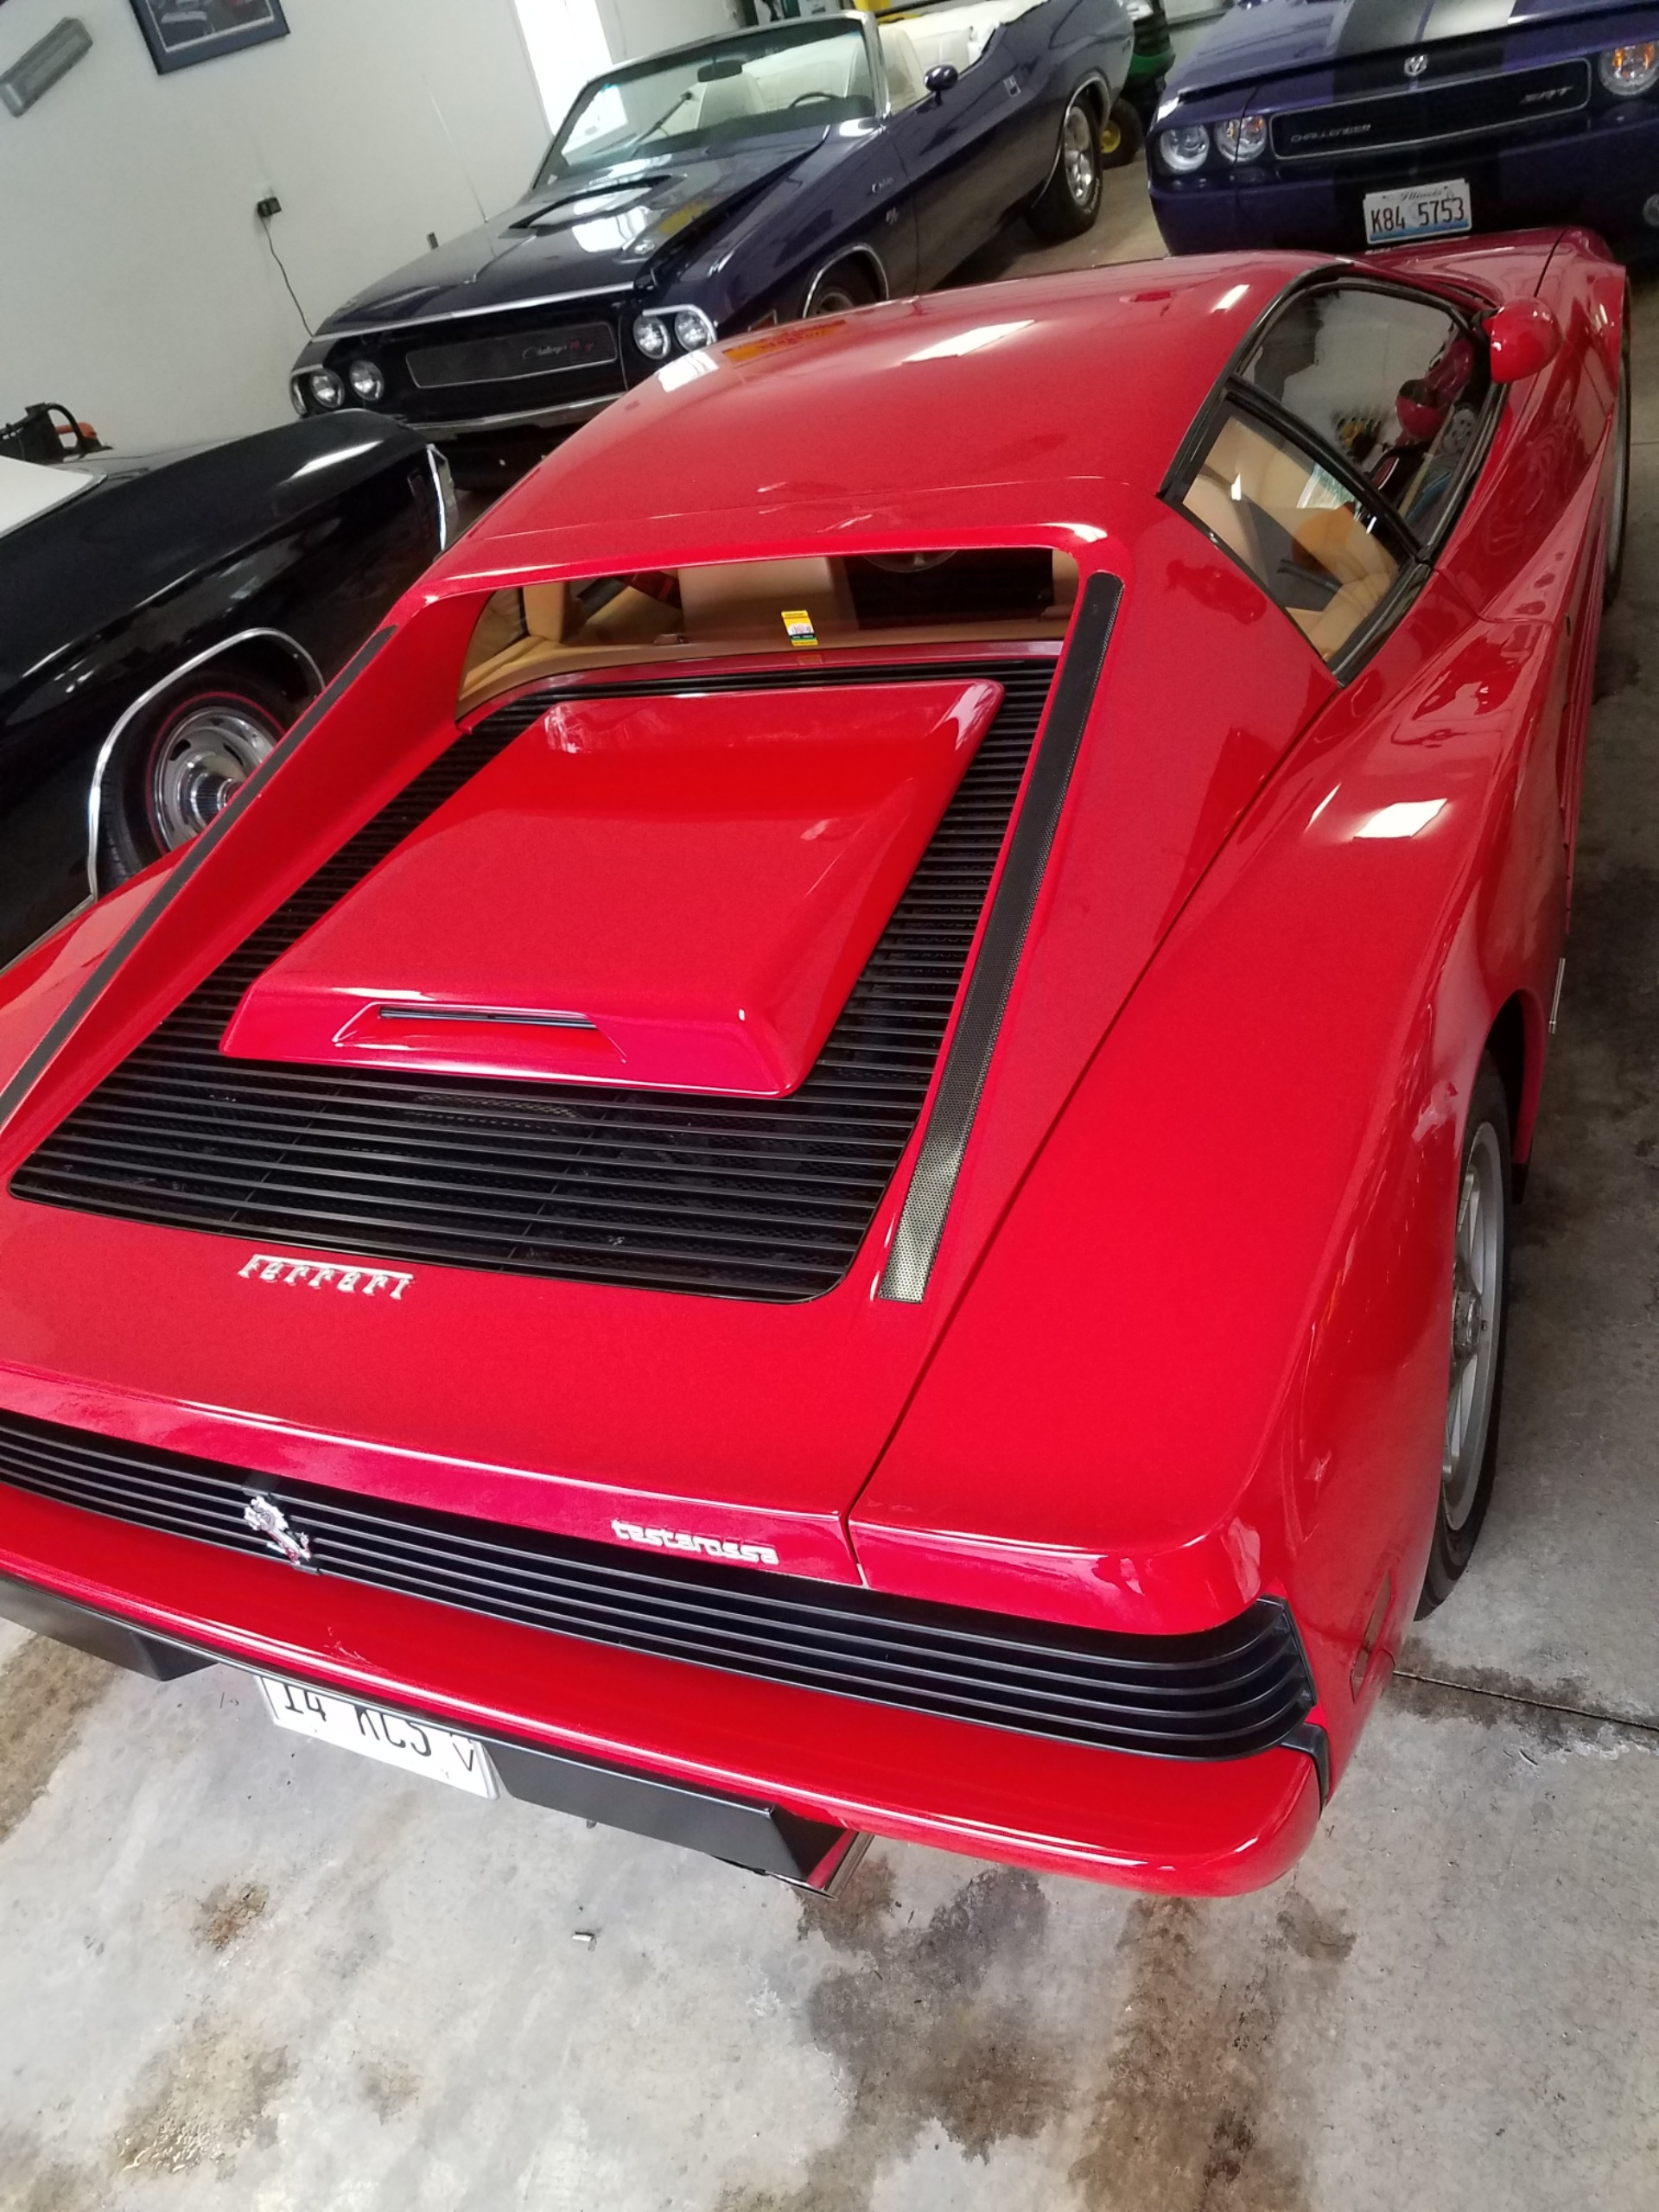 Used 1987 Ferrari Testarossa -CLASSIC SUPERCAR - FULLY SERVICED - VERY LOW MILES - | Mundelein, IL